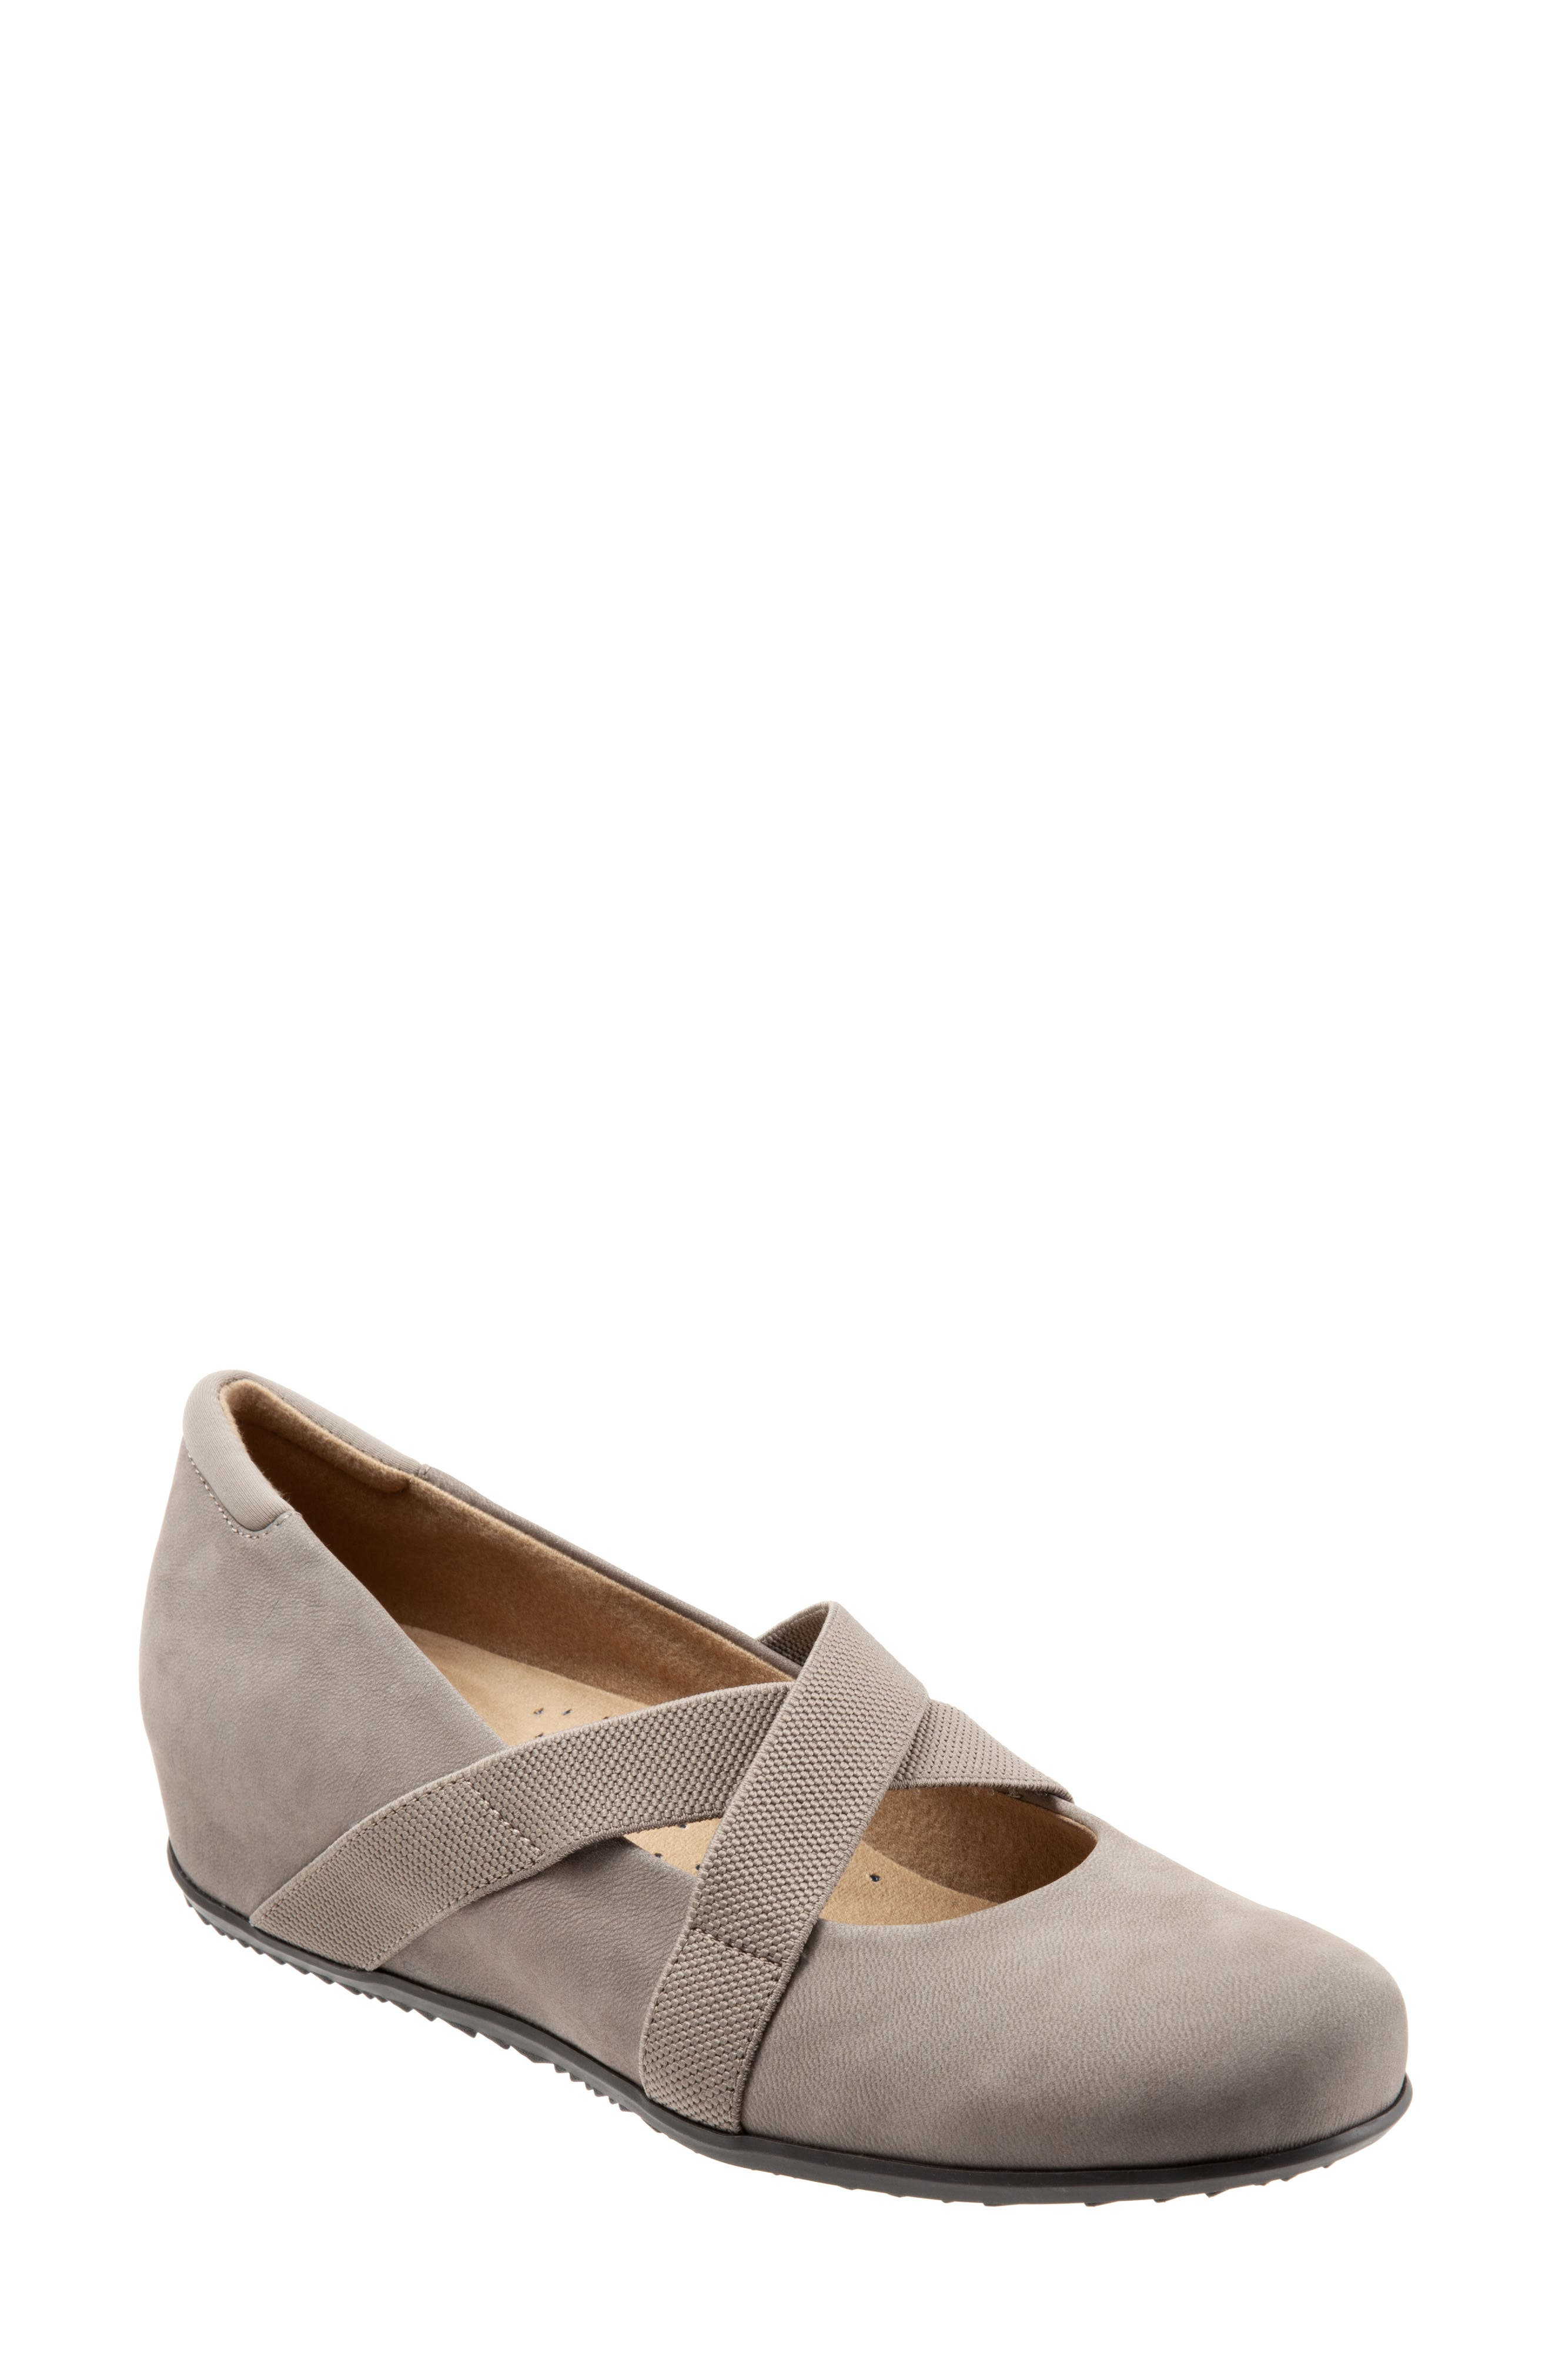 SOFTWALK<SUP>®</SUP> Waverly Mary Jane Wedge, Main, color, TAUPE LEATHER